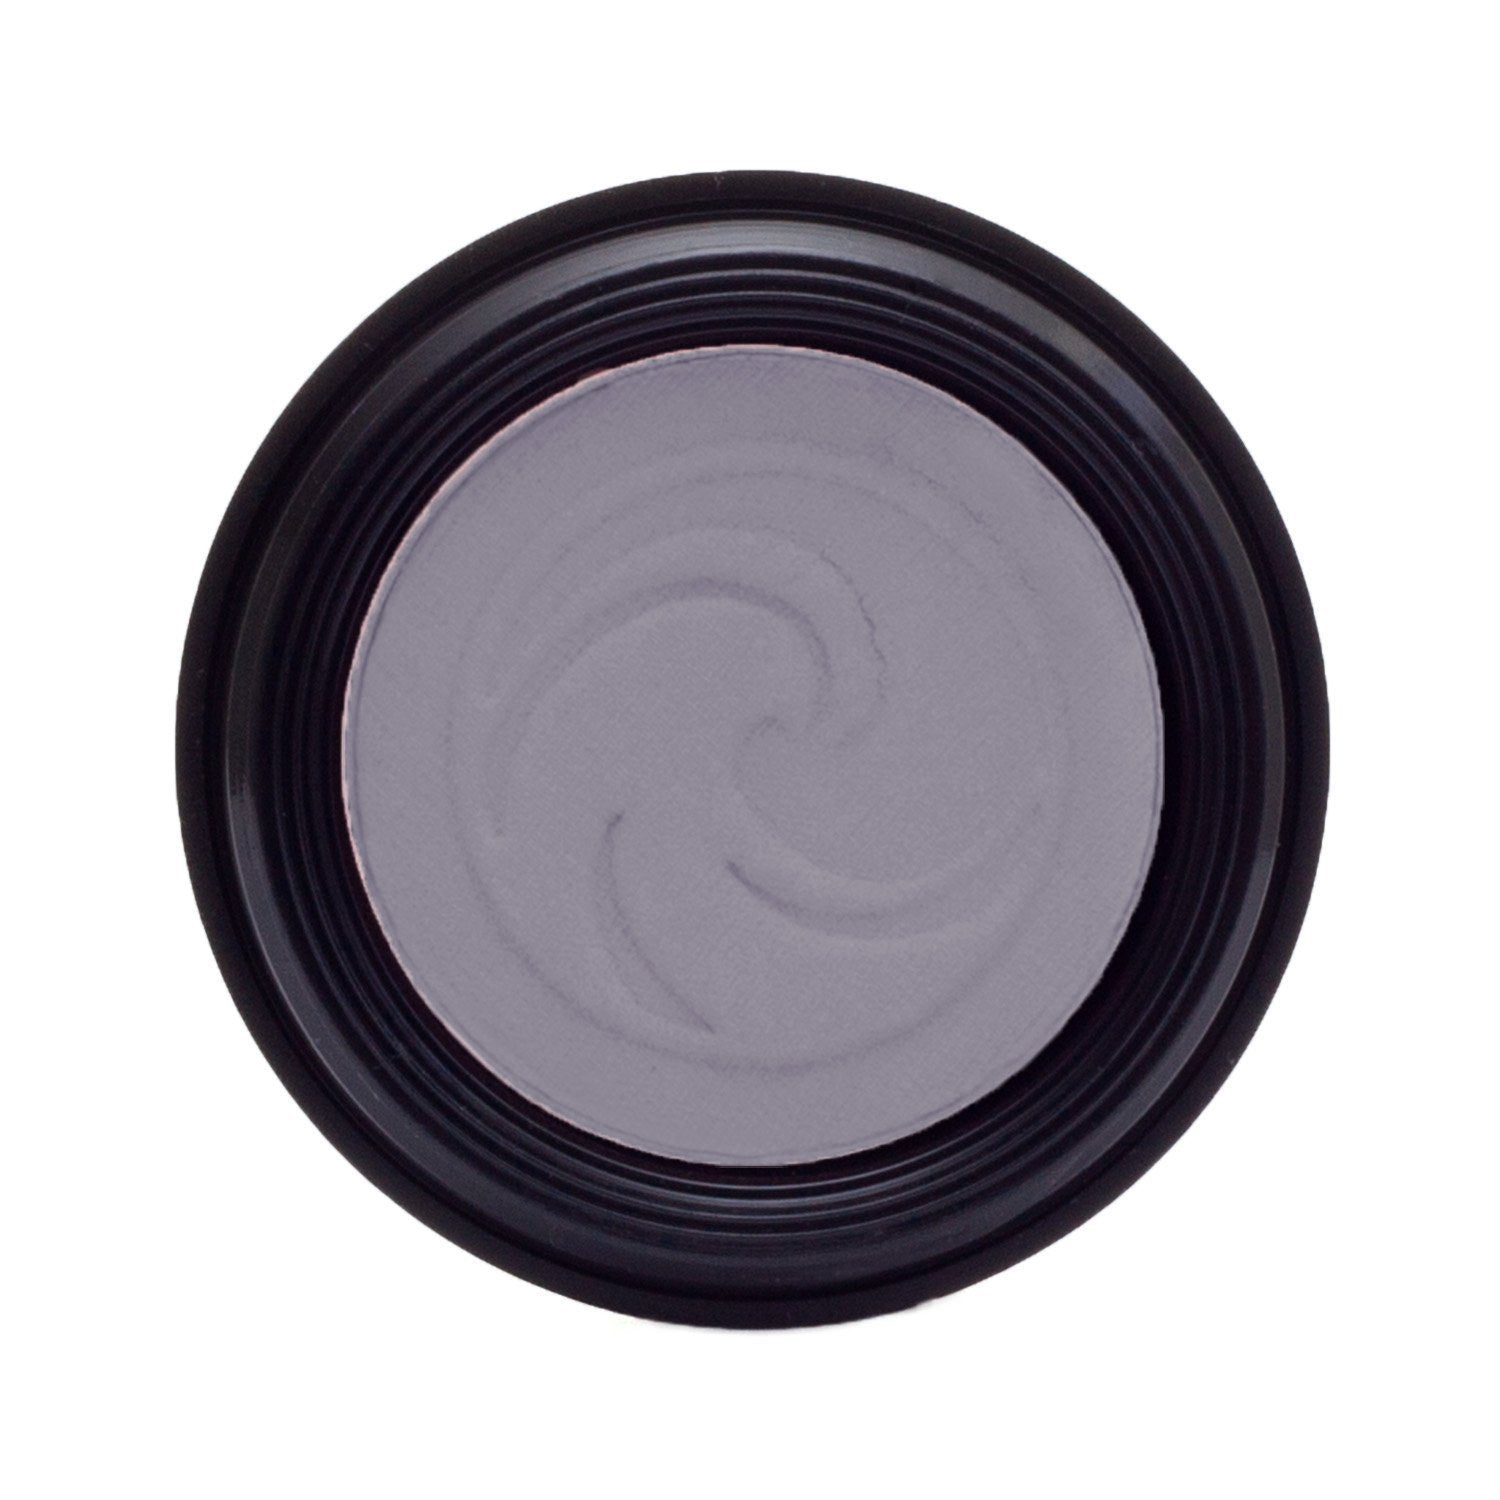 Personal Care - Gabriel - Eyeshadow, Plume, .07oz